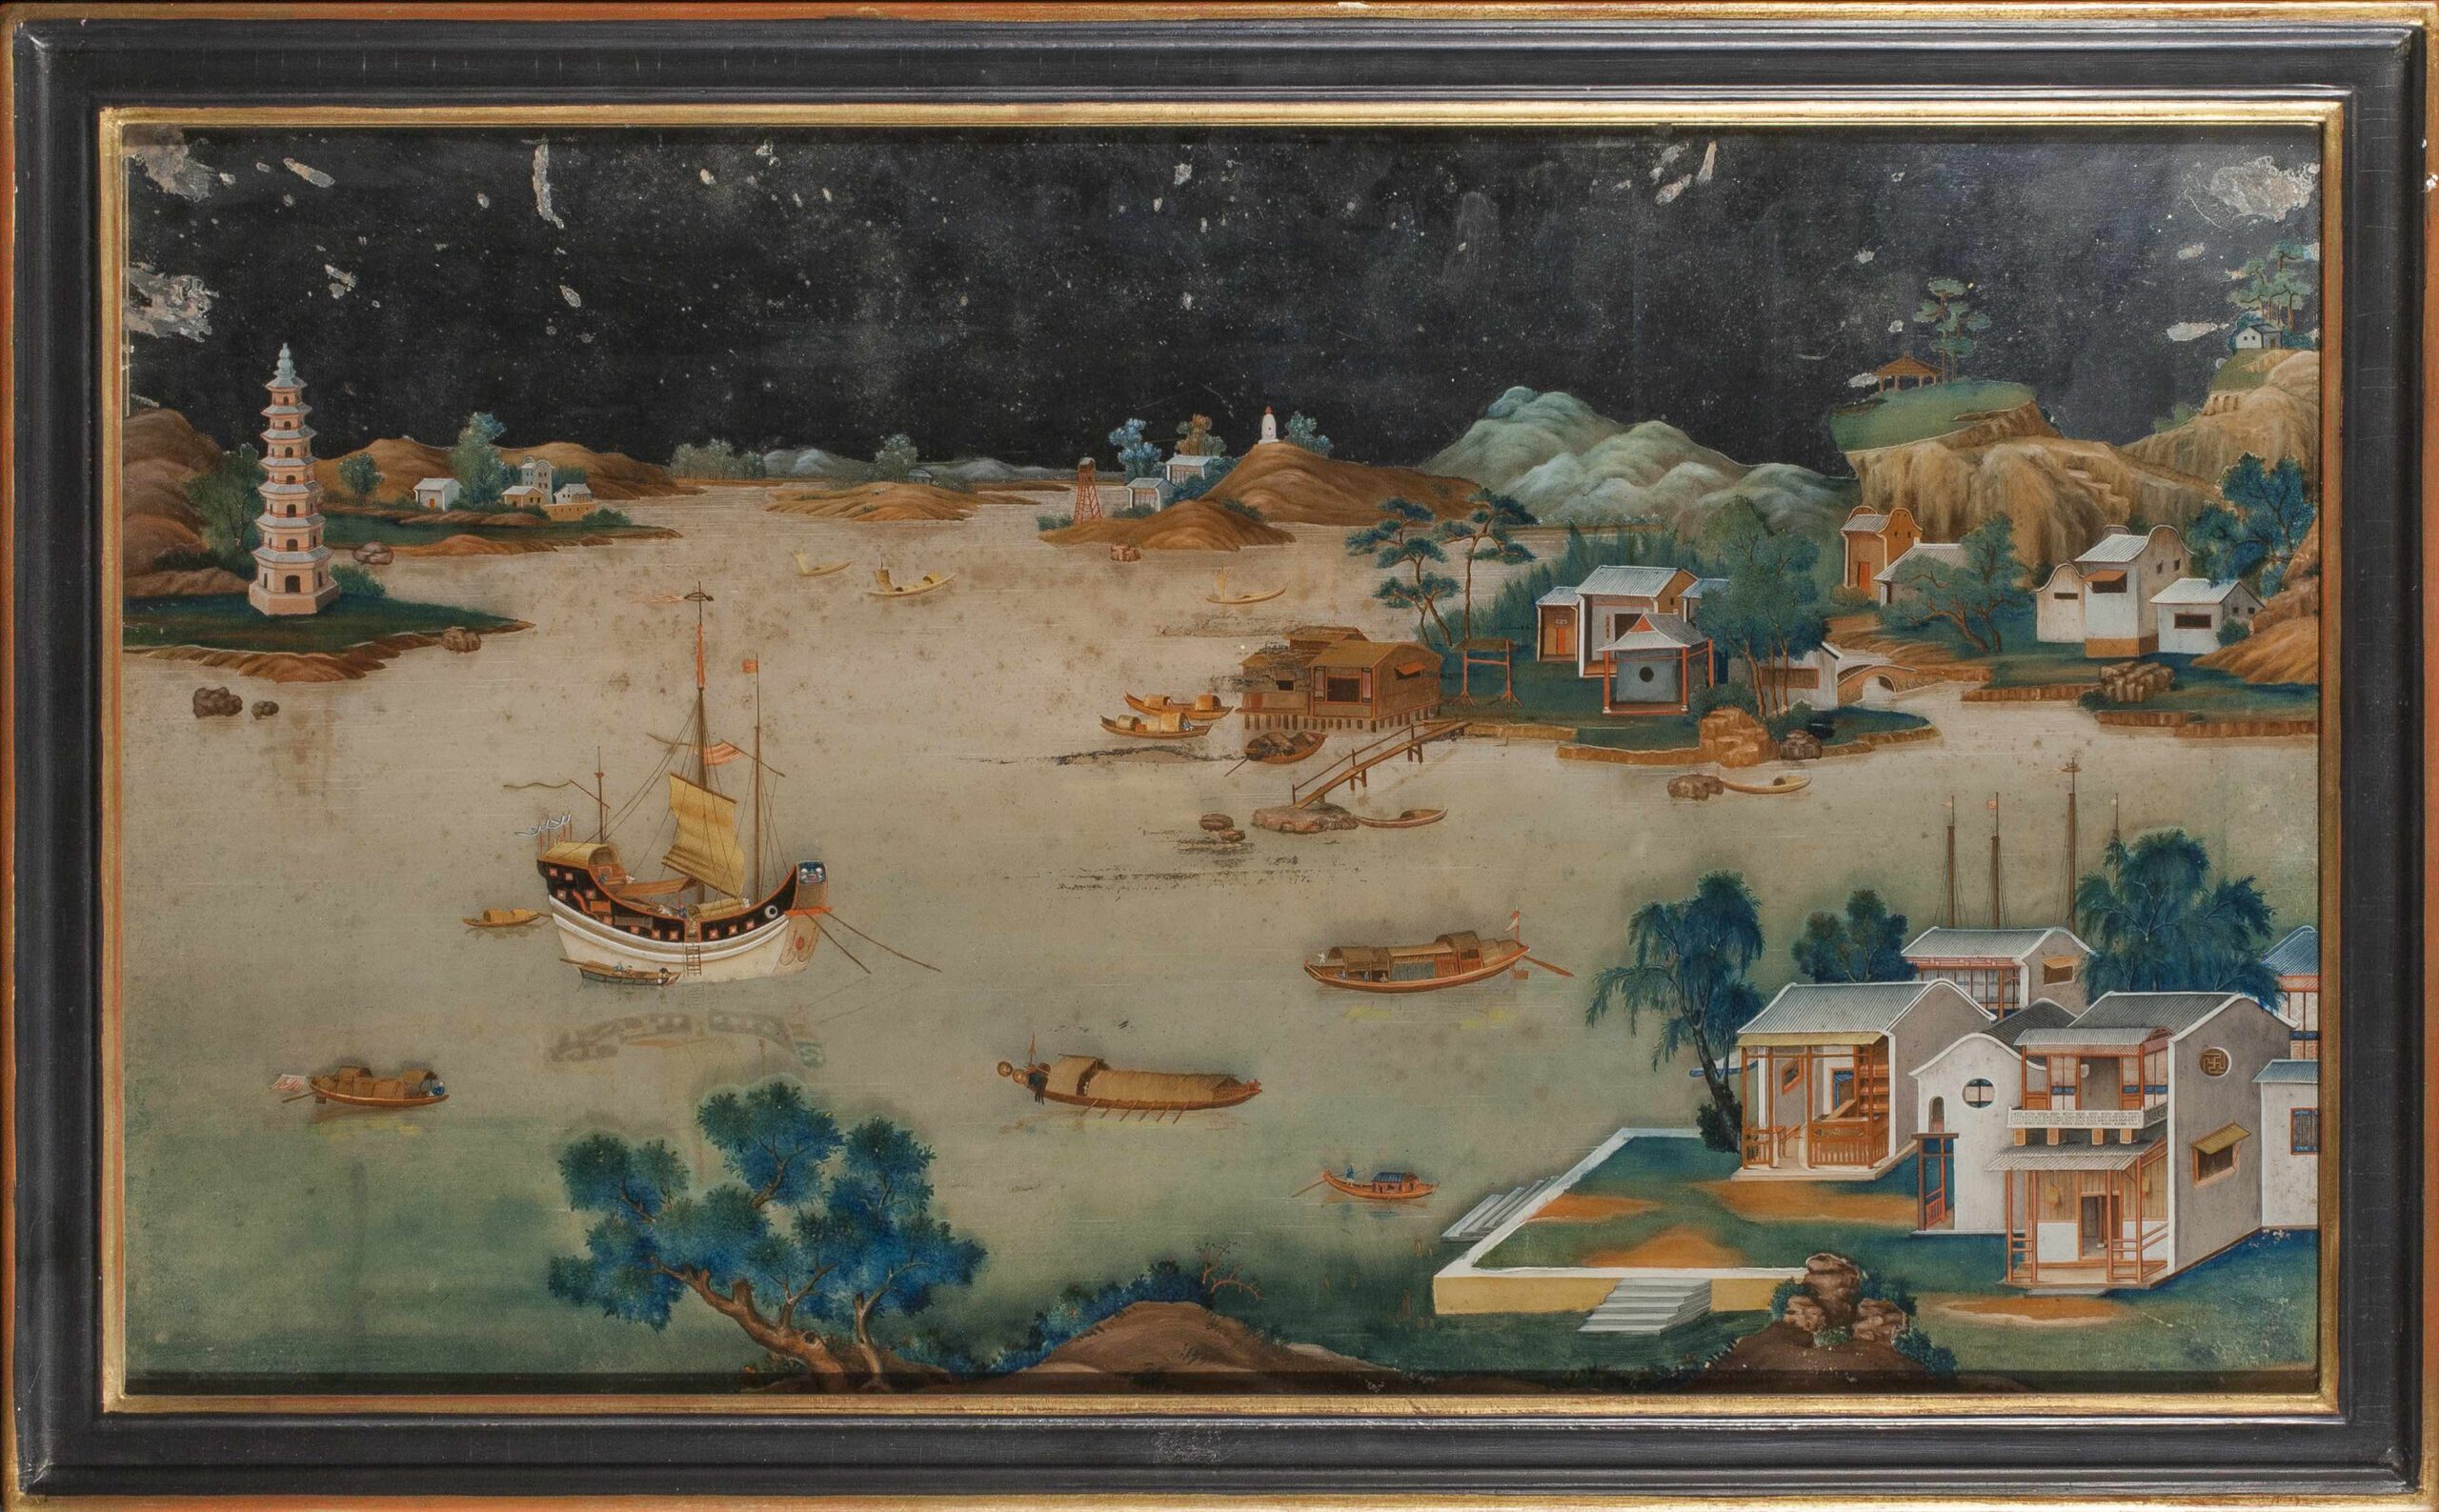 Chinese school, late 18th century One of a pair of 'reverse glass' river scenes Oil on partly silvered glass, 17 1/2 x 29 3/4 in (44.5 x 75.5 cm)